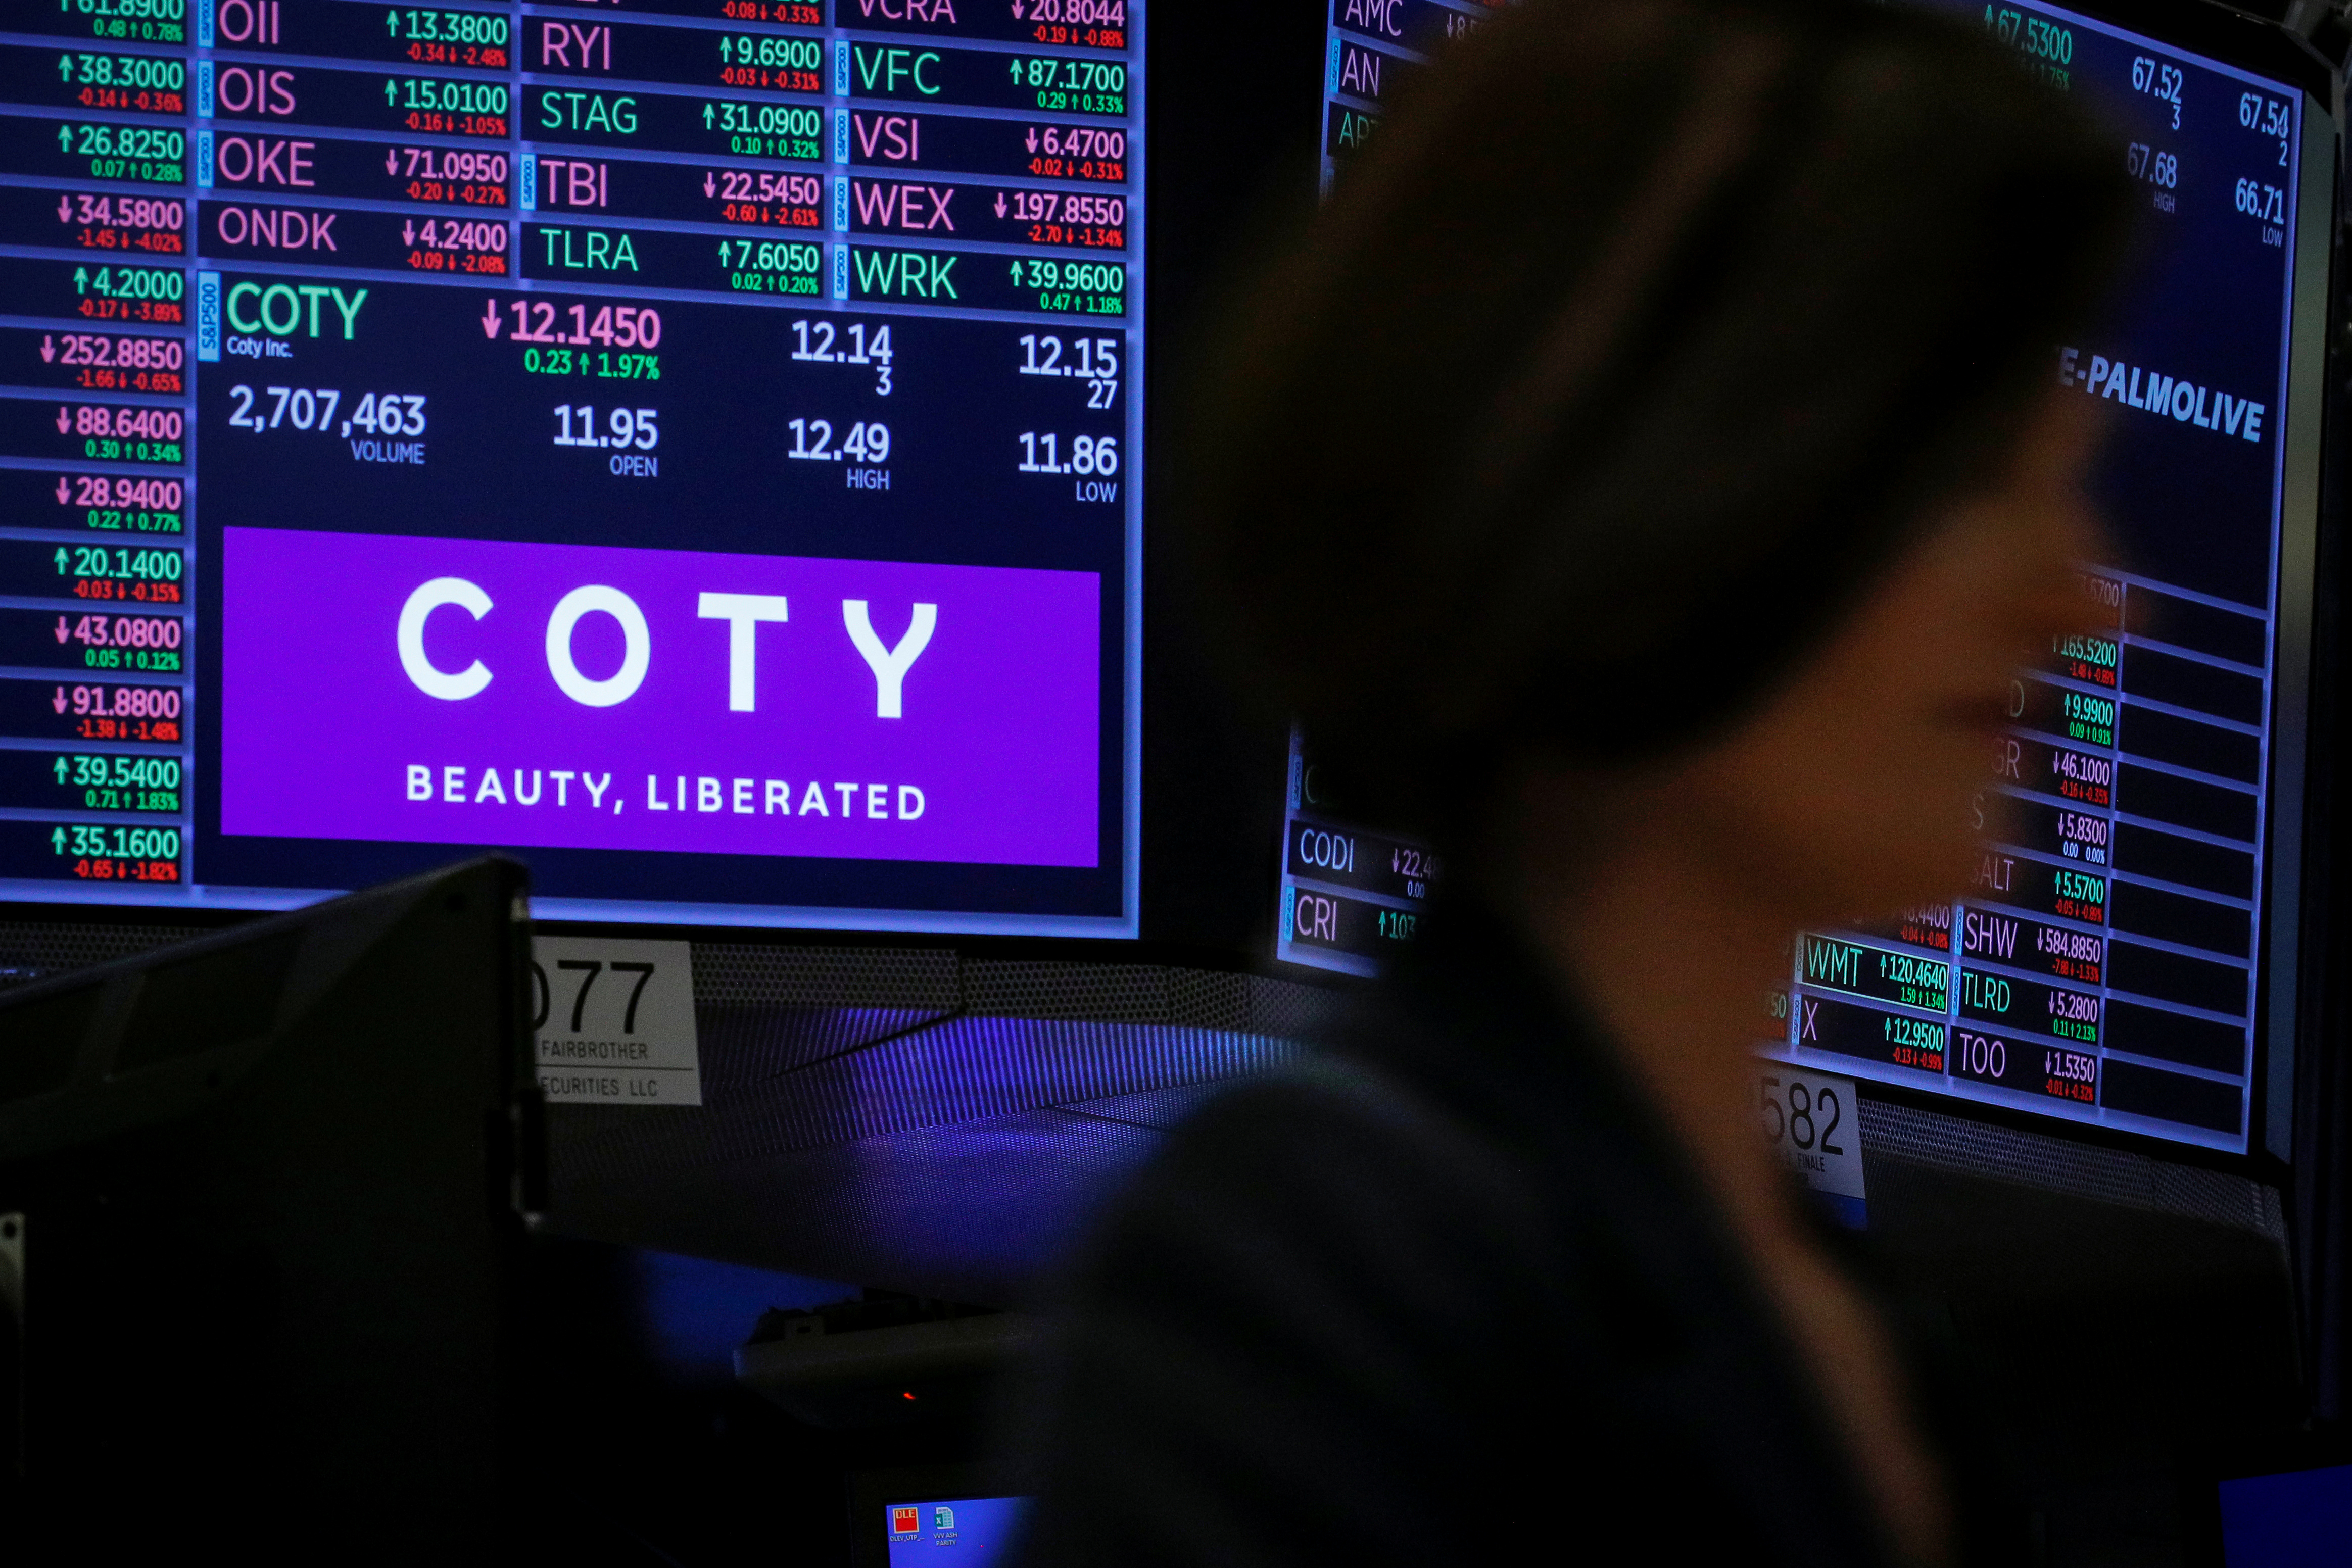 A screen displays the logo and trading information for Coty Inc at the New York Stock Exchange (NYSE) in New York, U.S., November 18, 2019. REUTERS/Brendan McDermid